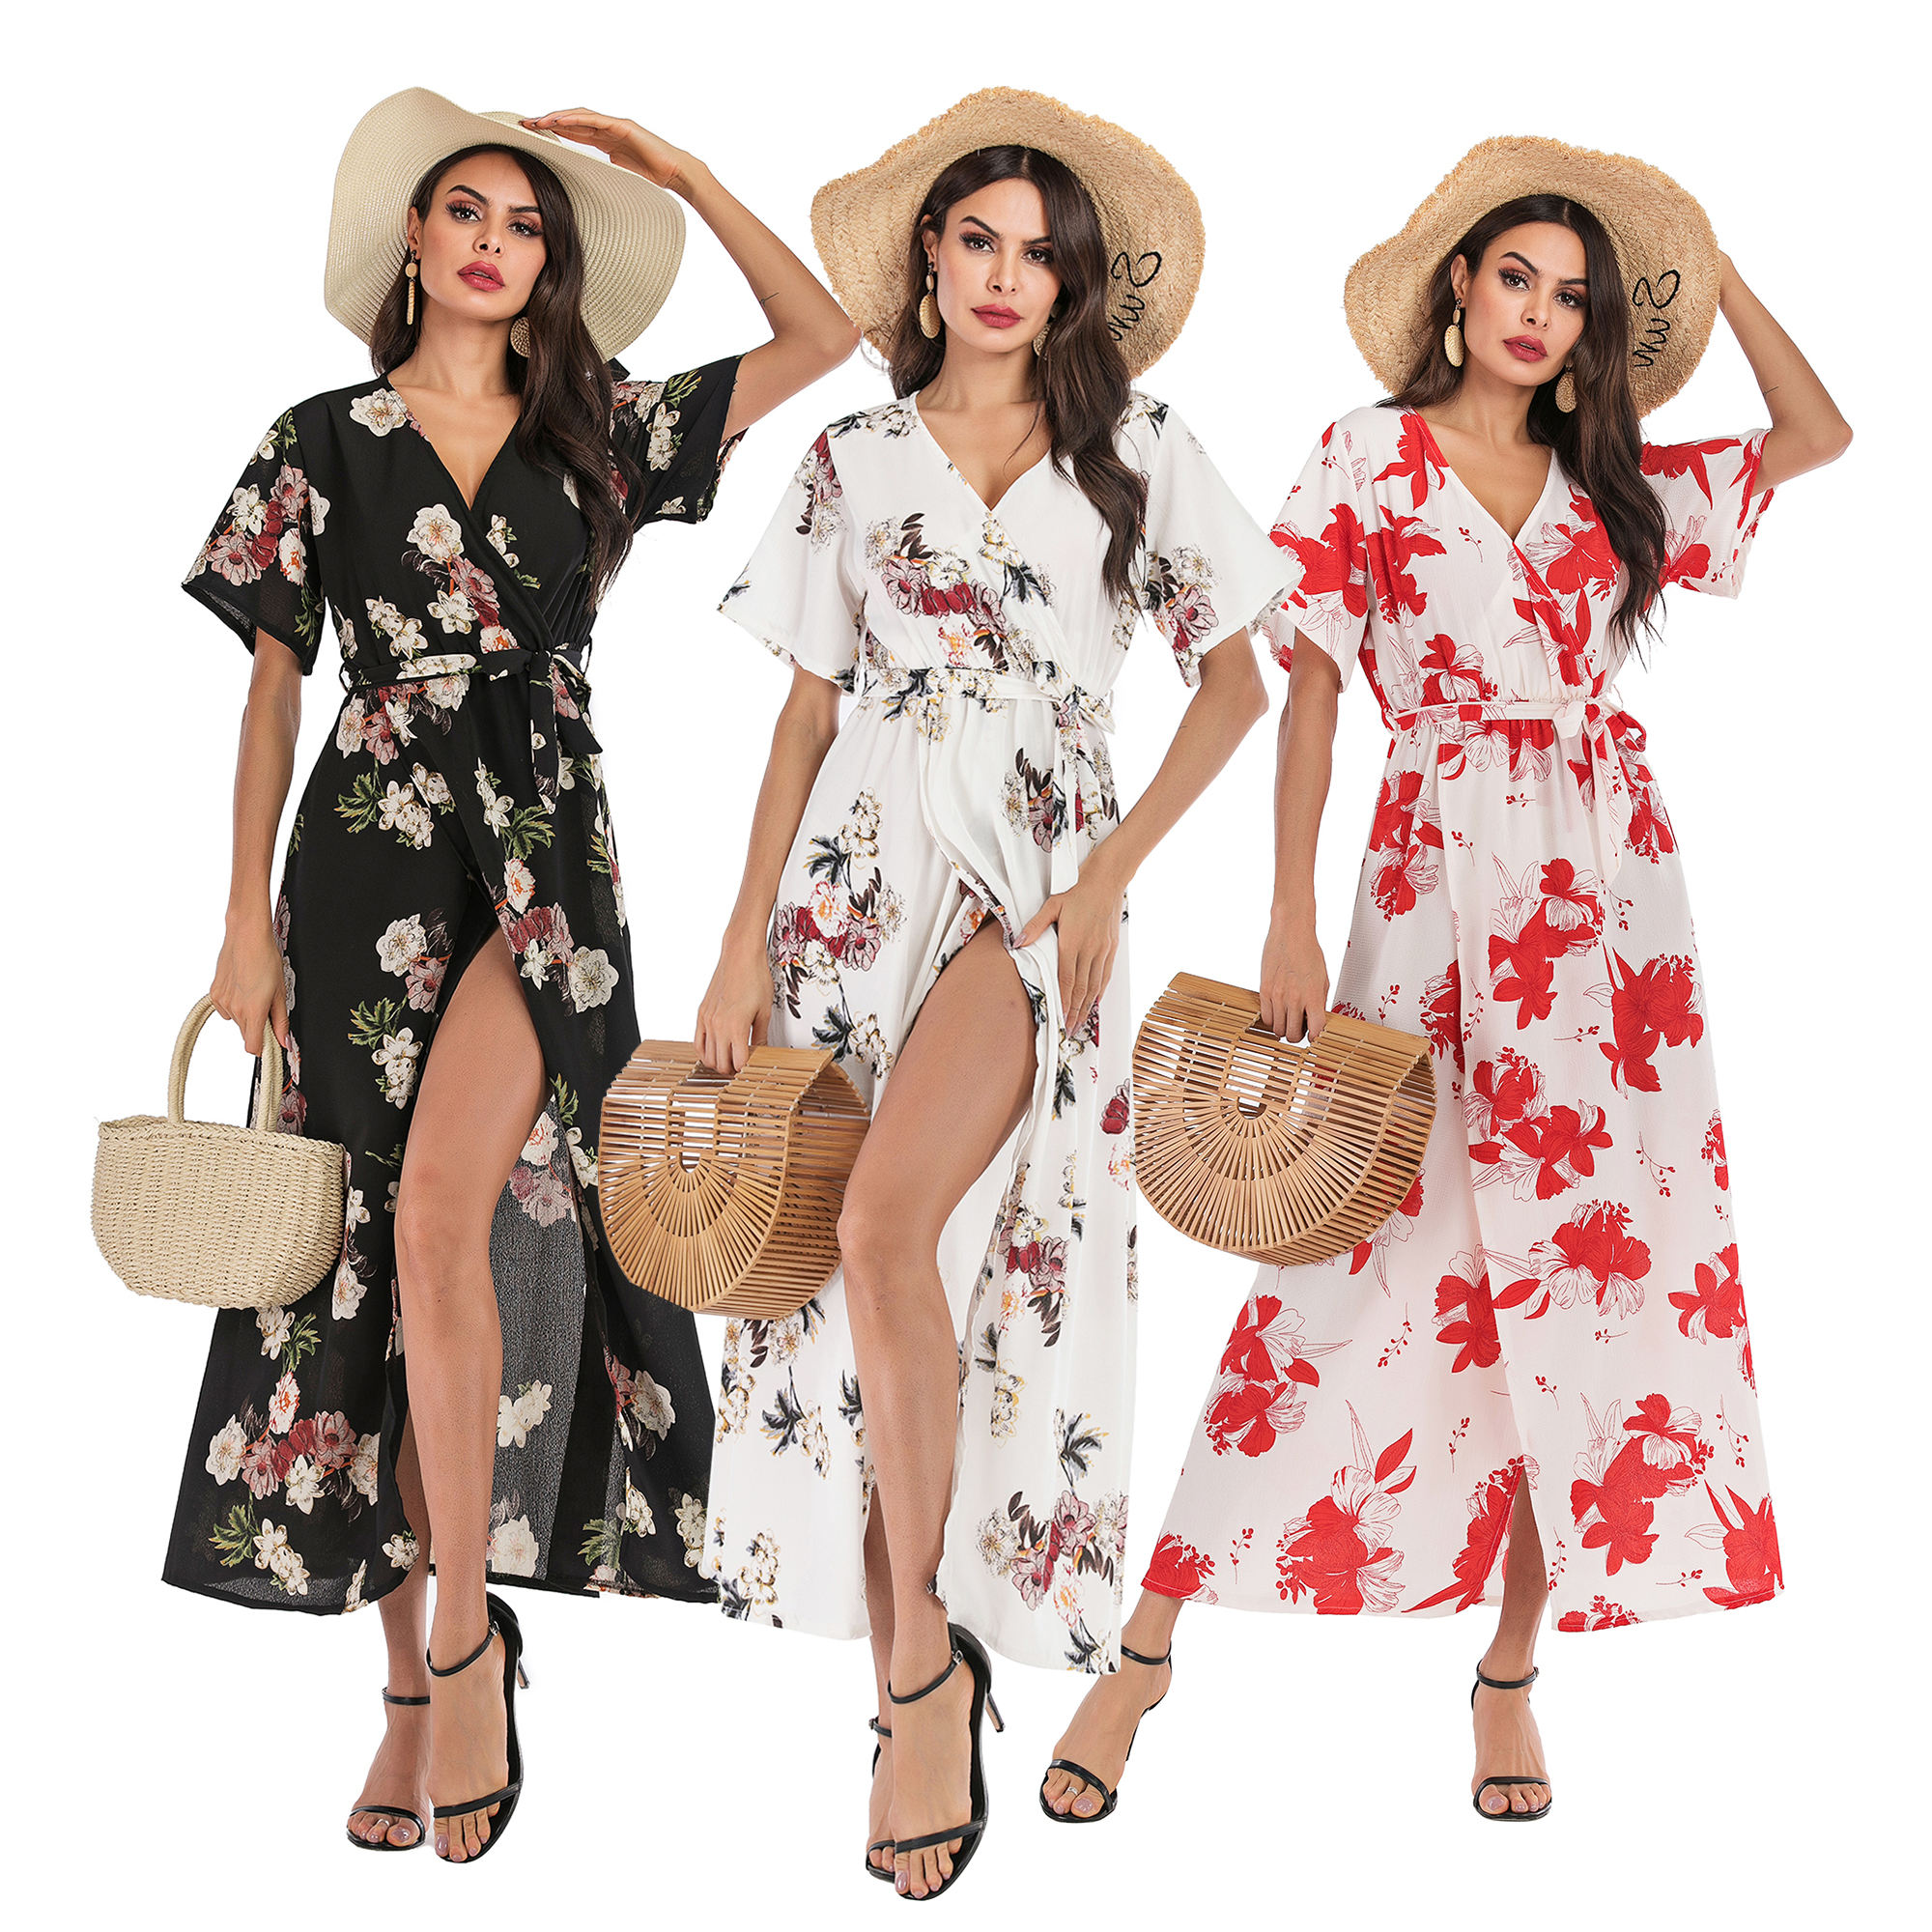 Short Sleeve Women's Summer V-neck Seaside Holiday Beach Floral Dress Women Clothing